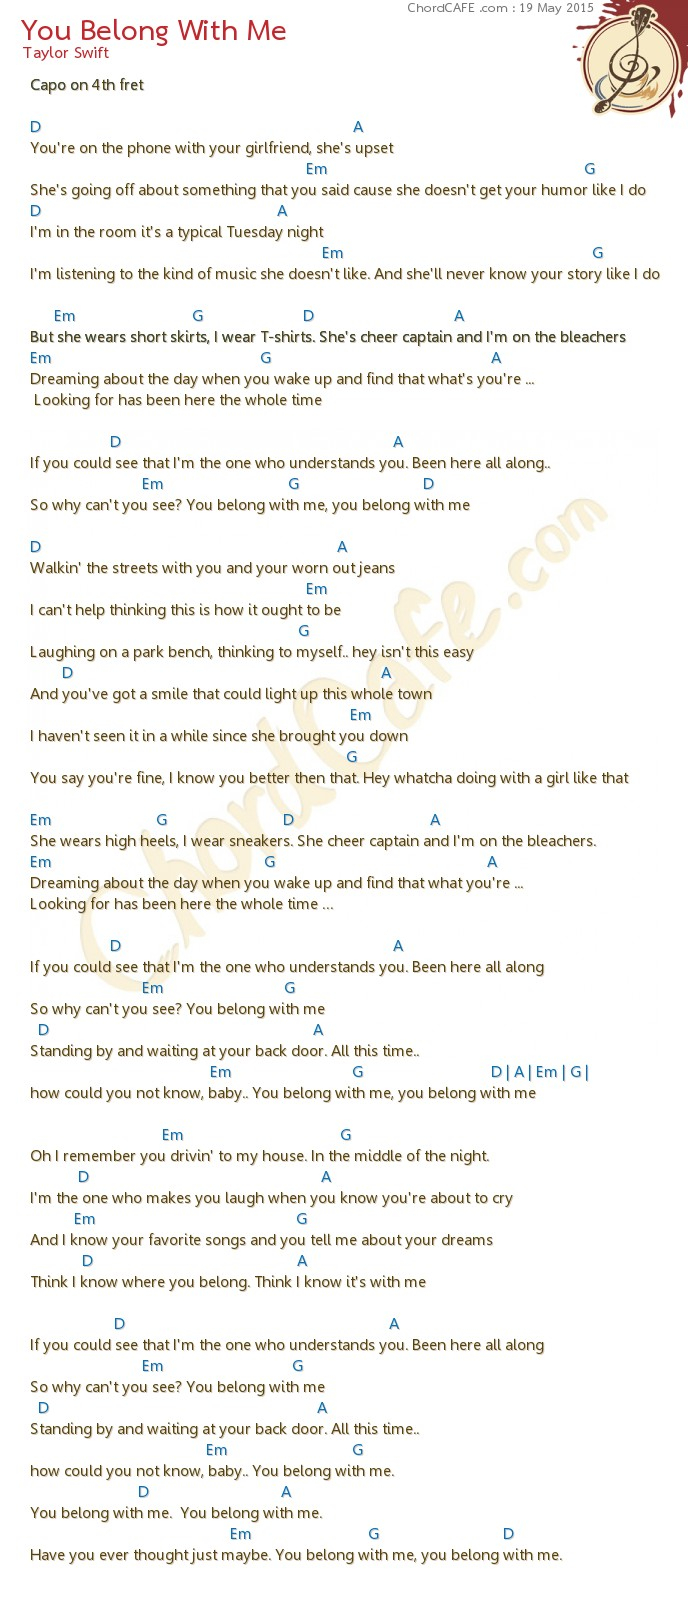 You Belong With Me Chords You Belong With Me Download Chordcafe